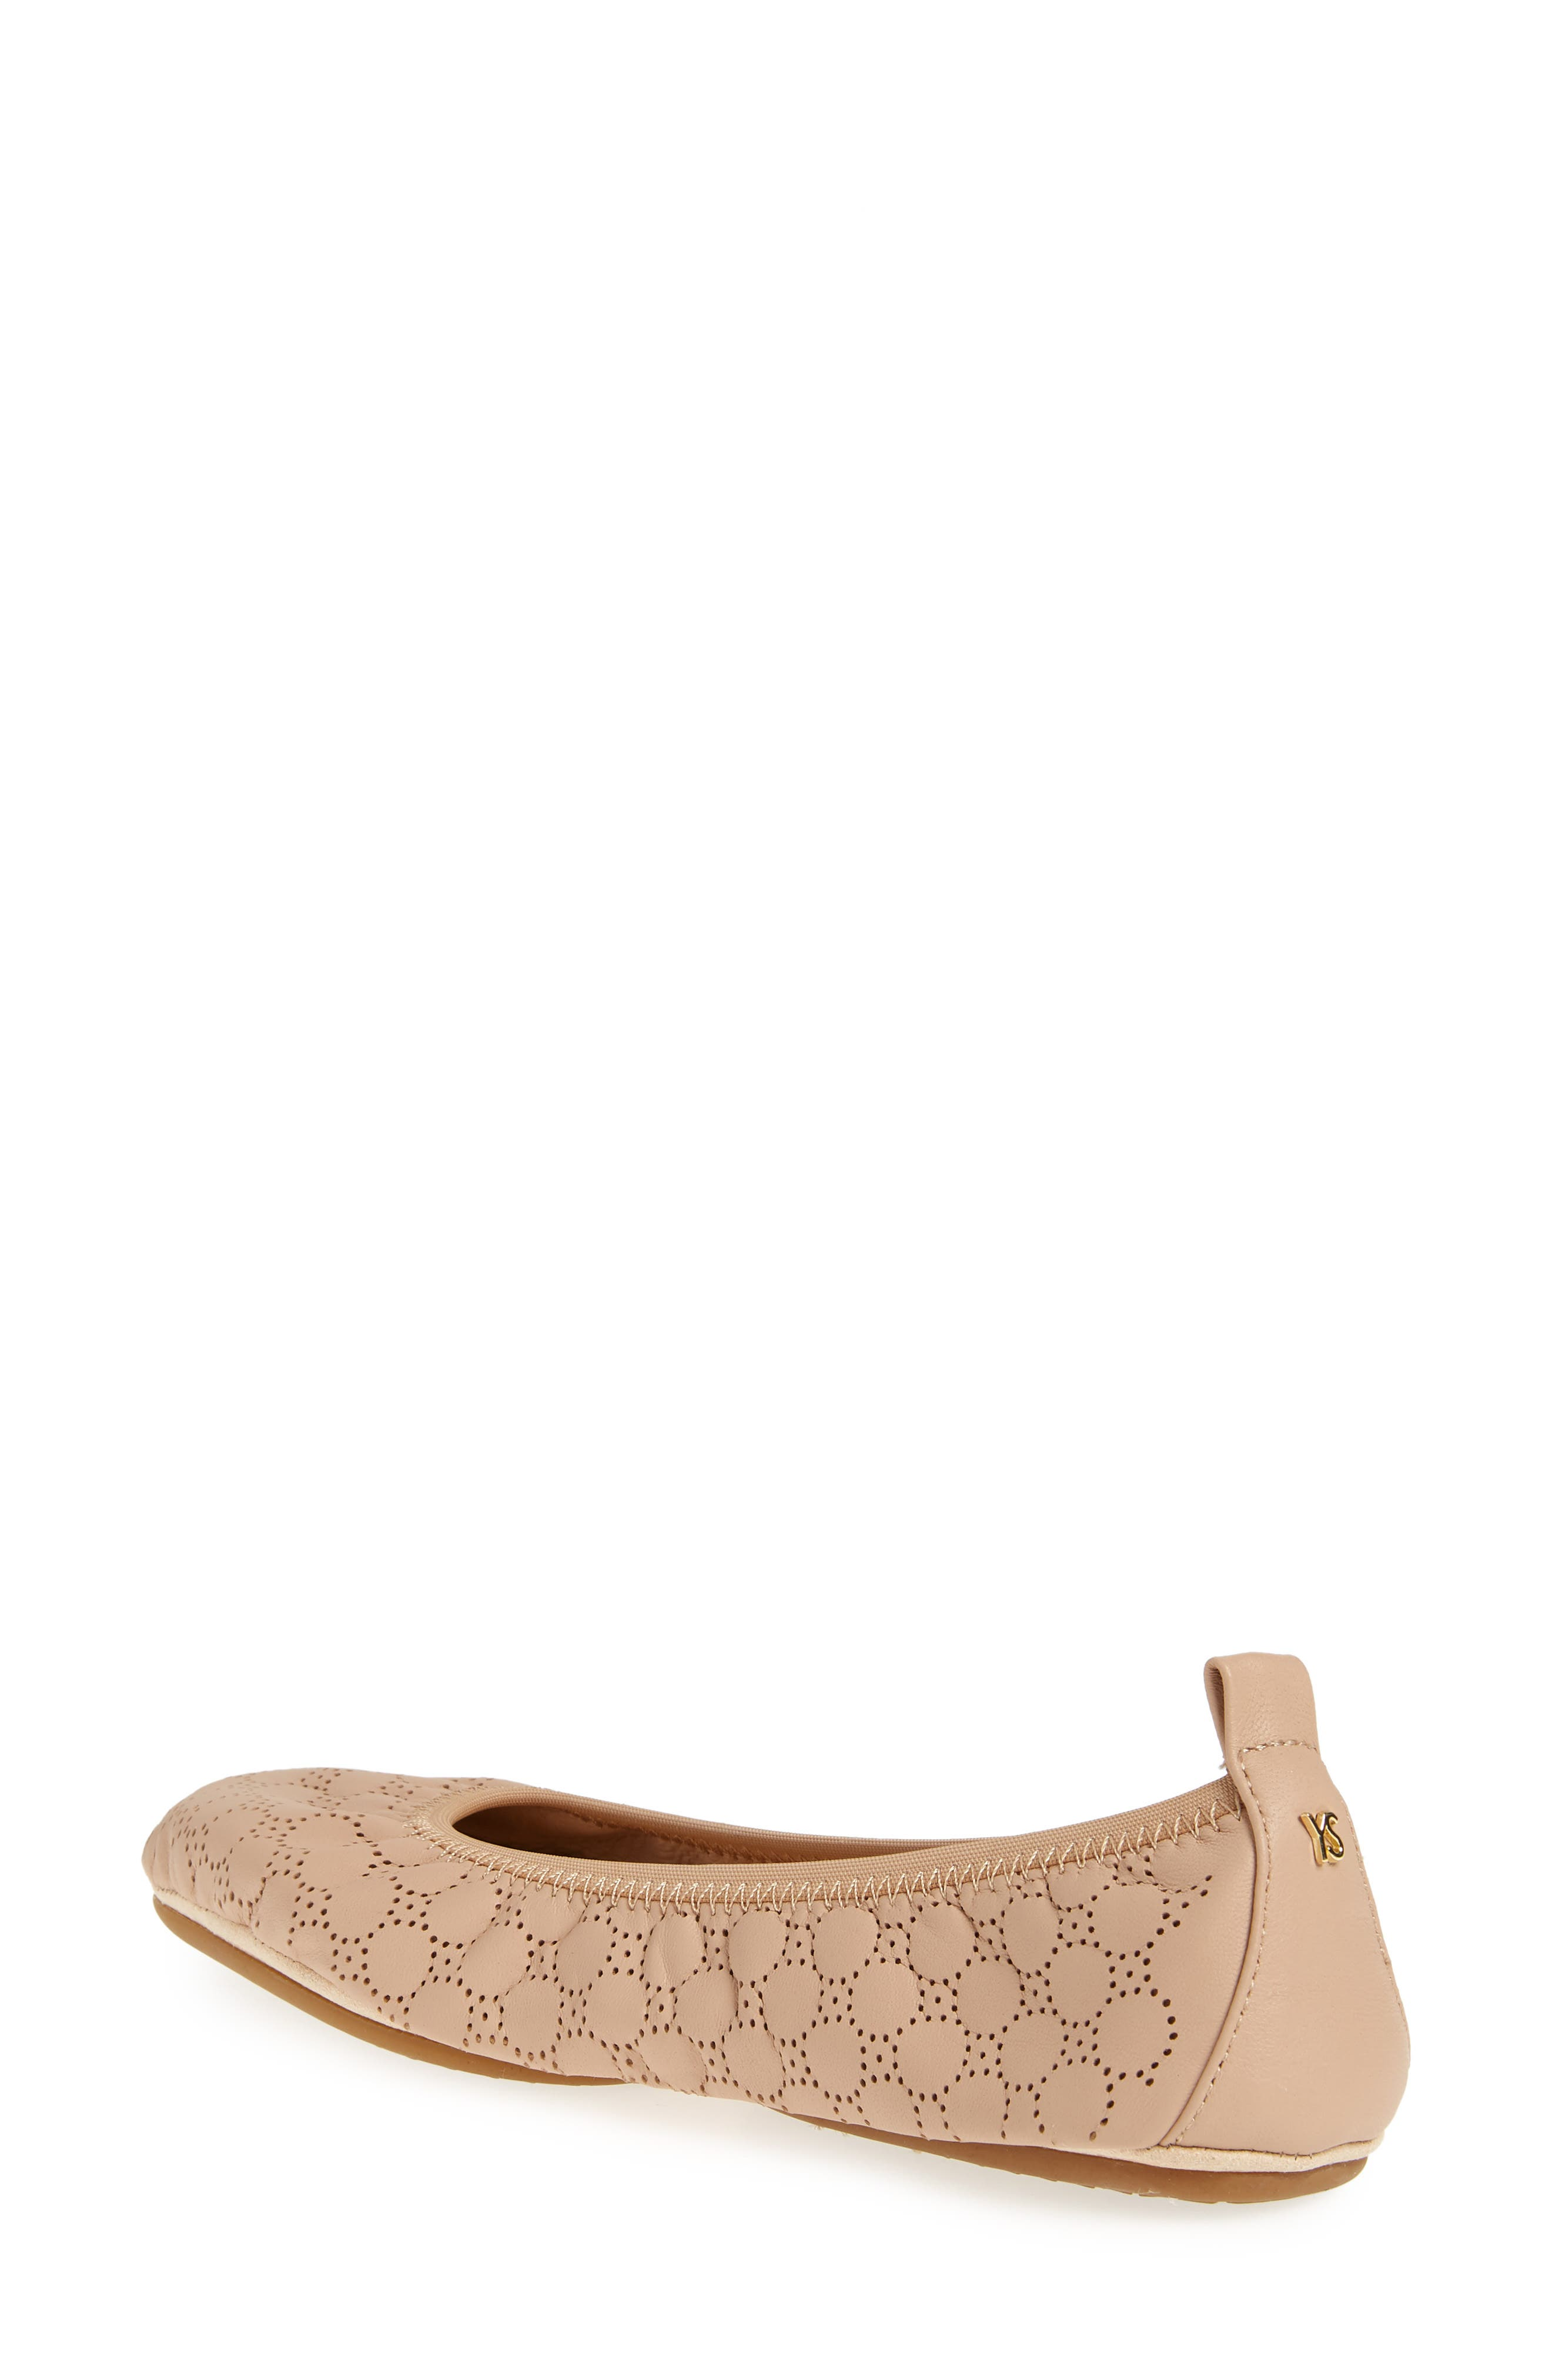 Vince Foldable Ballet Flat,                             Alternate thumbnail 2, color,                             Nude Circle Perforated Leather